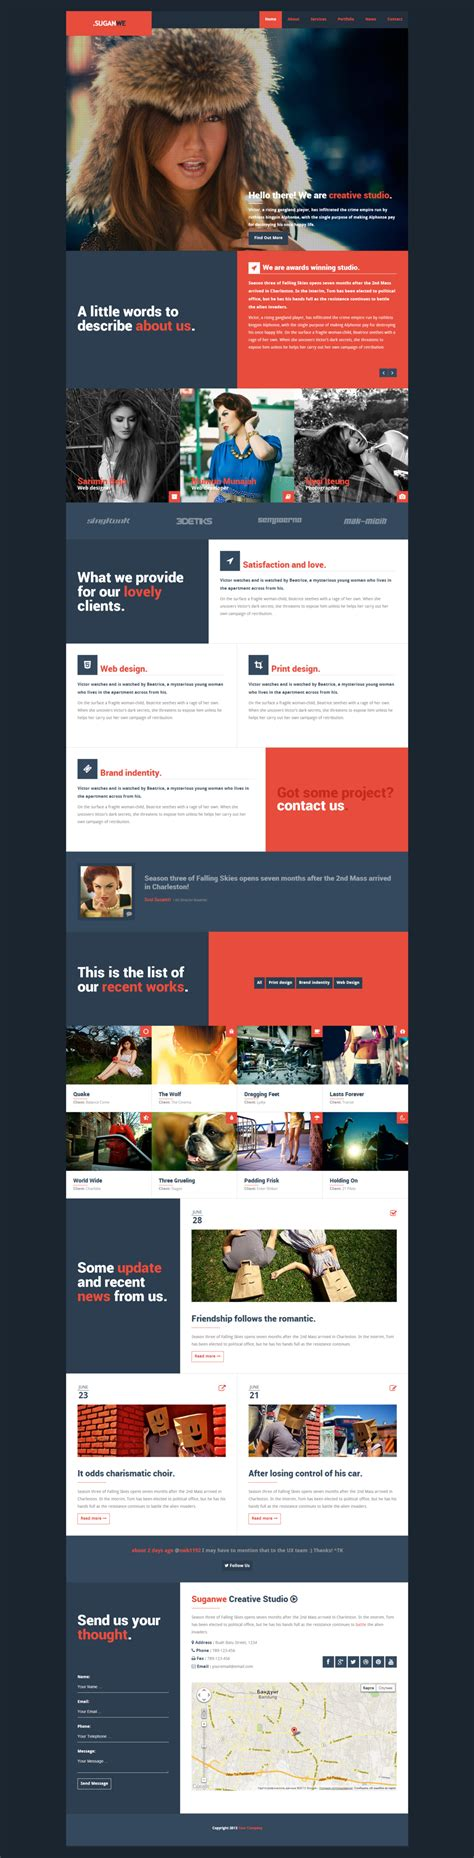 suganwe responsive one page template html5 by